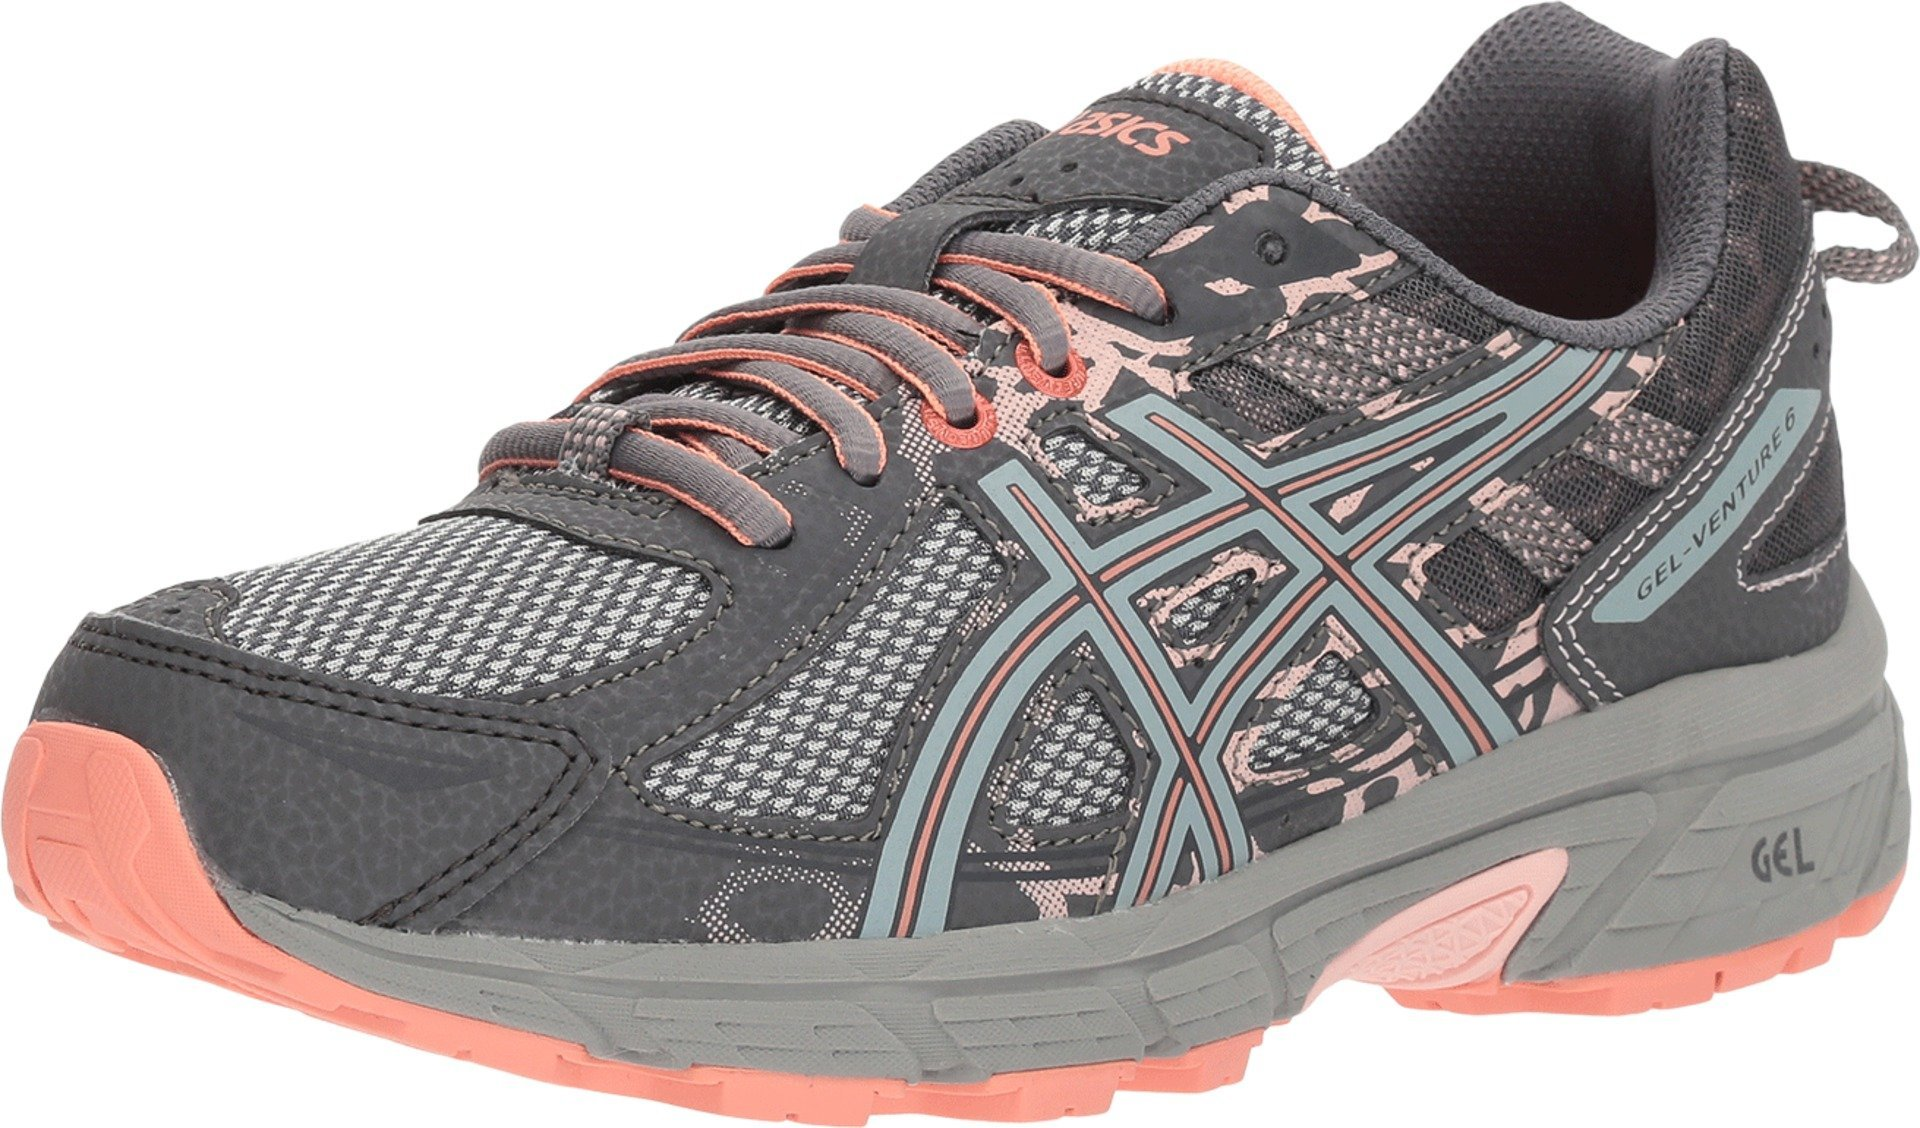 ASICS Women's Gel-Venture 6 Running-Shoes, Carbon/Mid Grey/Seashell Pink, 12.5 by ASICS